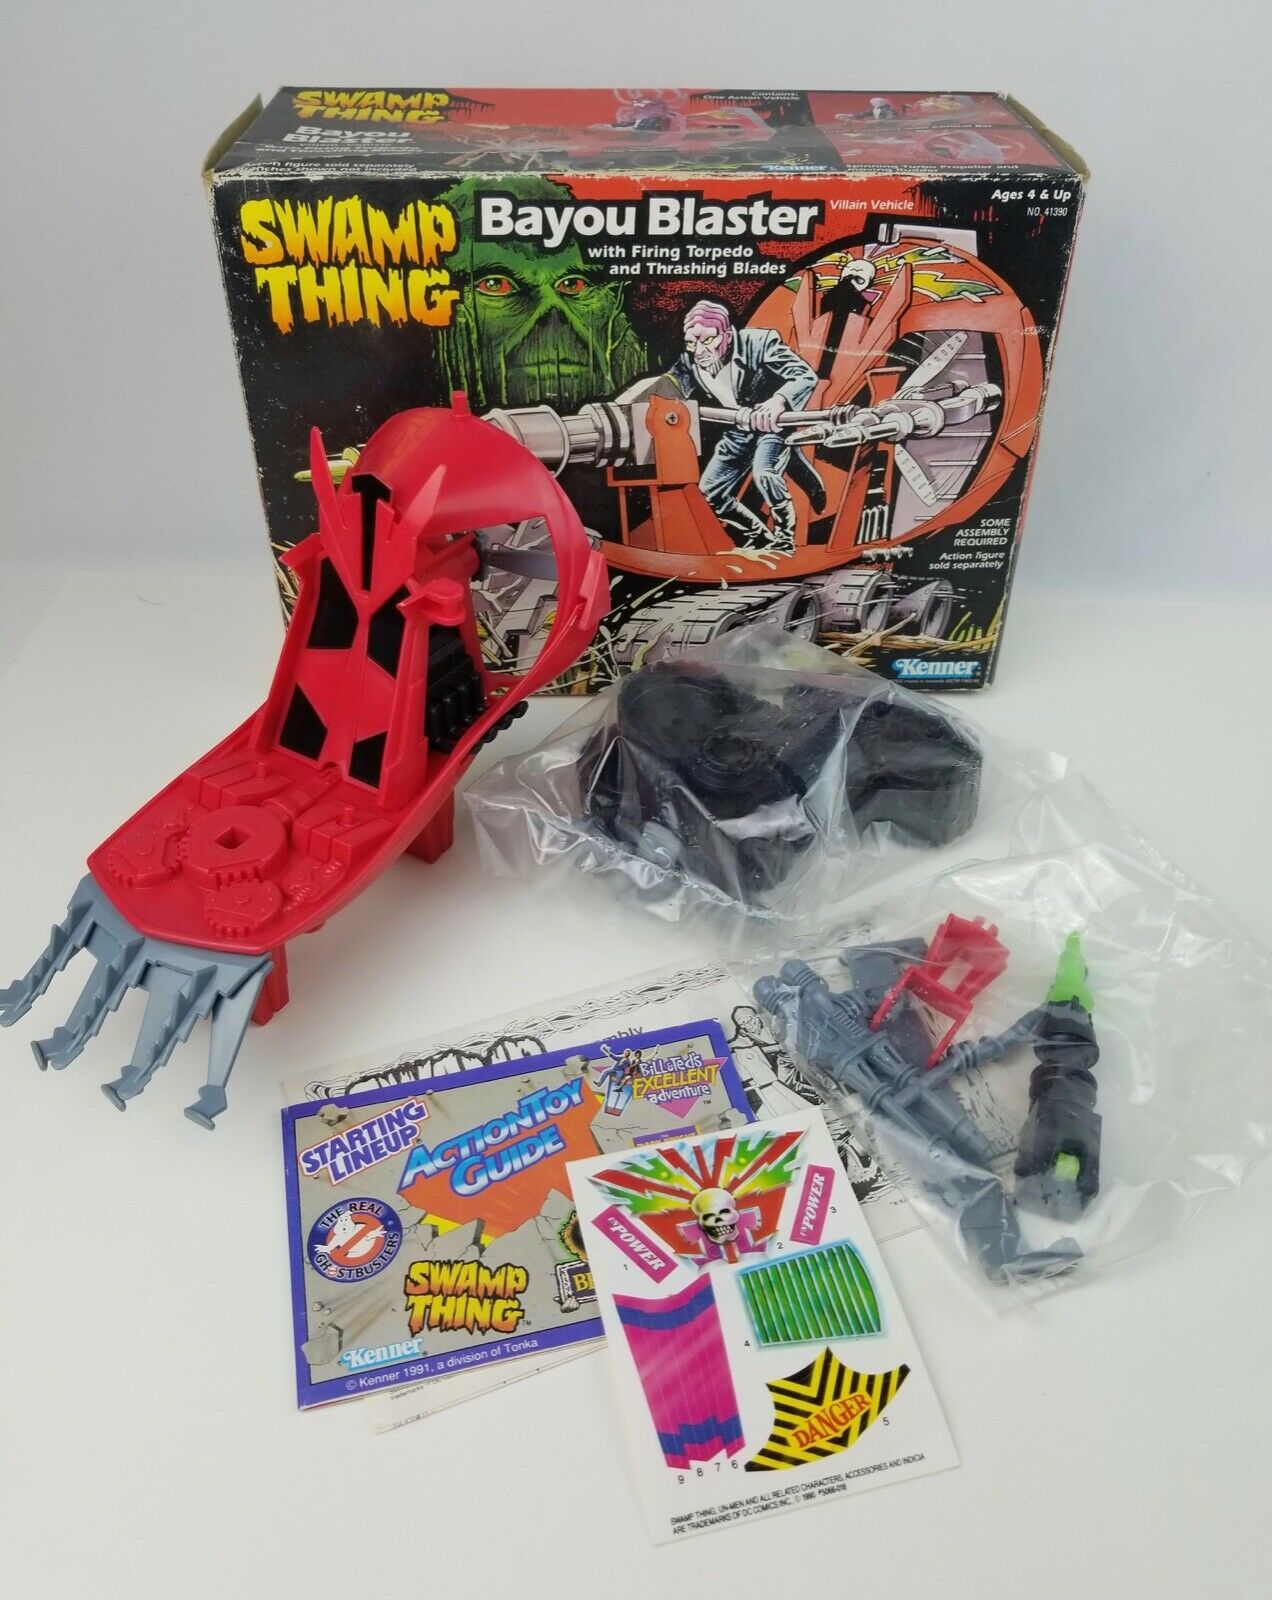 1990 New Kenner Swamp Thing Bayou Blaster Vehicle Open box w  sealed contents